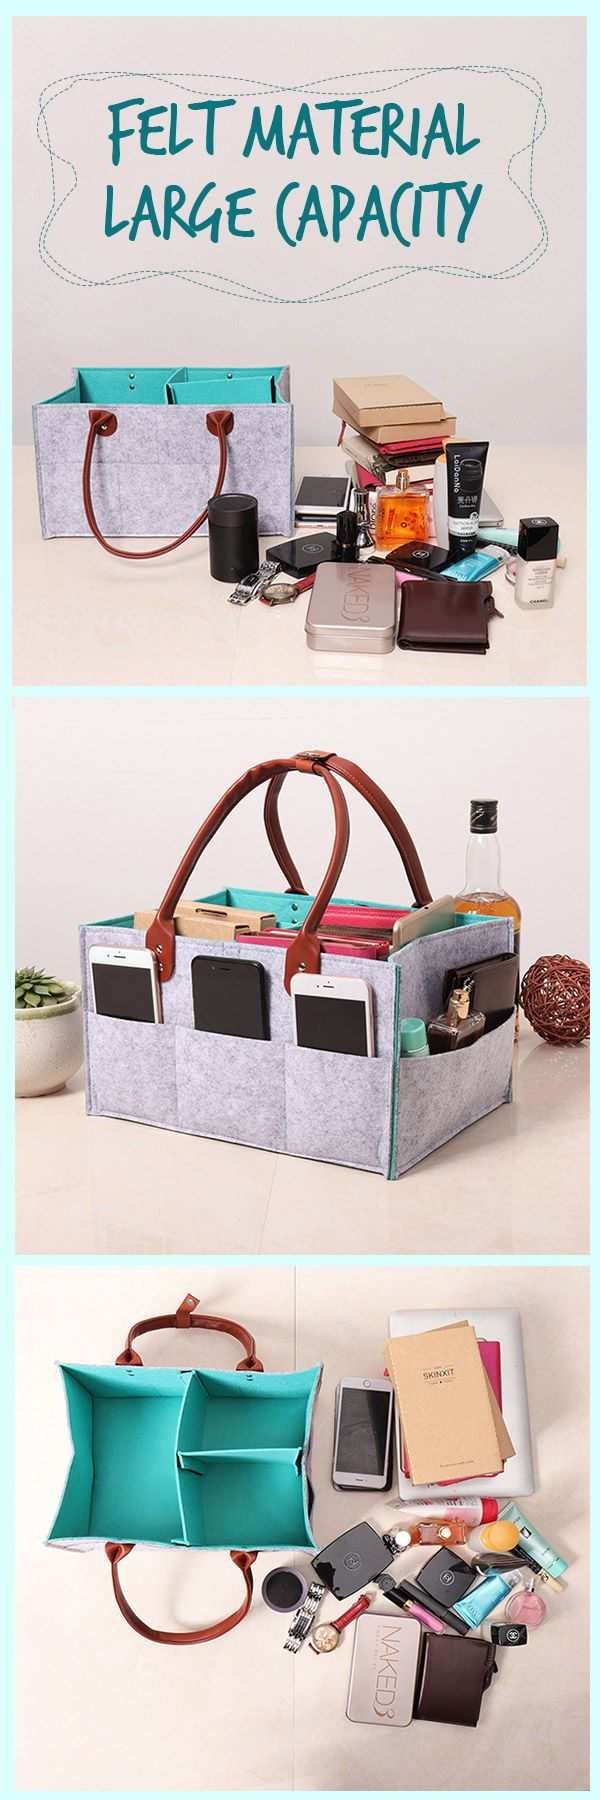 US$13.59-Felt Bag In Bag Hand Cosmetic Bag Jewelry Diaper Ipad Phone Sundries Container #newchic#storage#housing